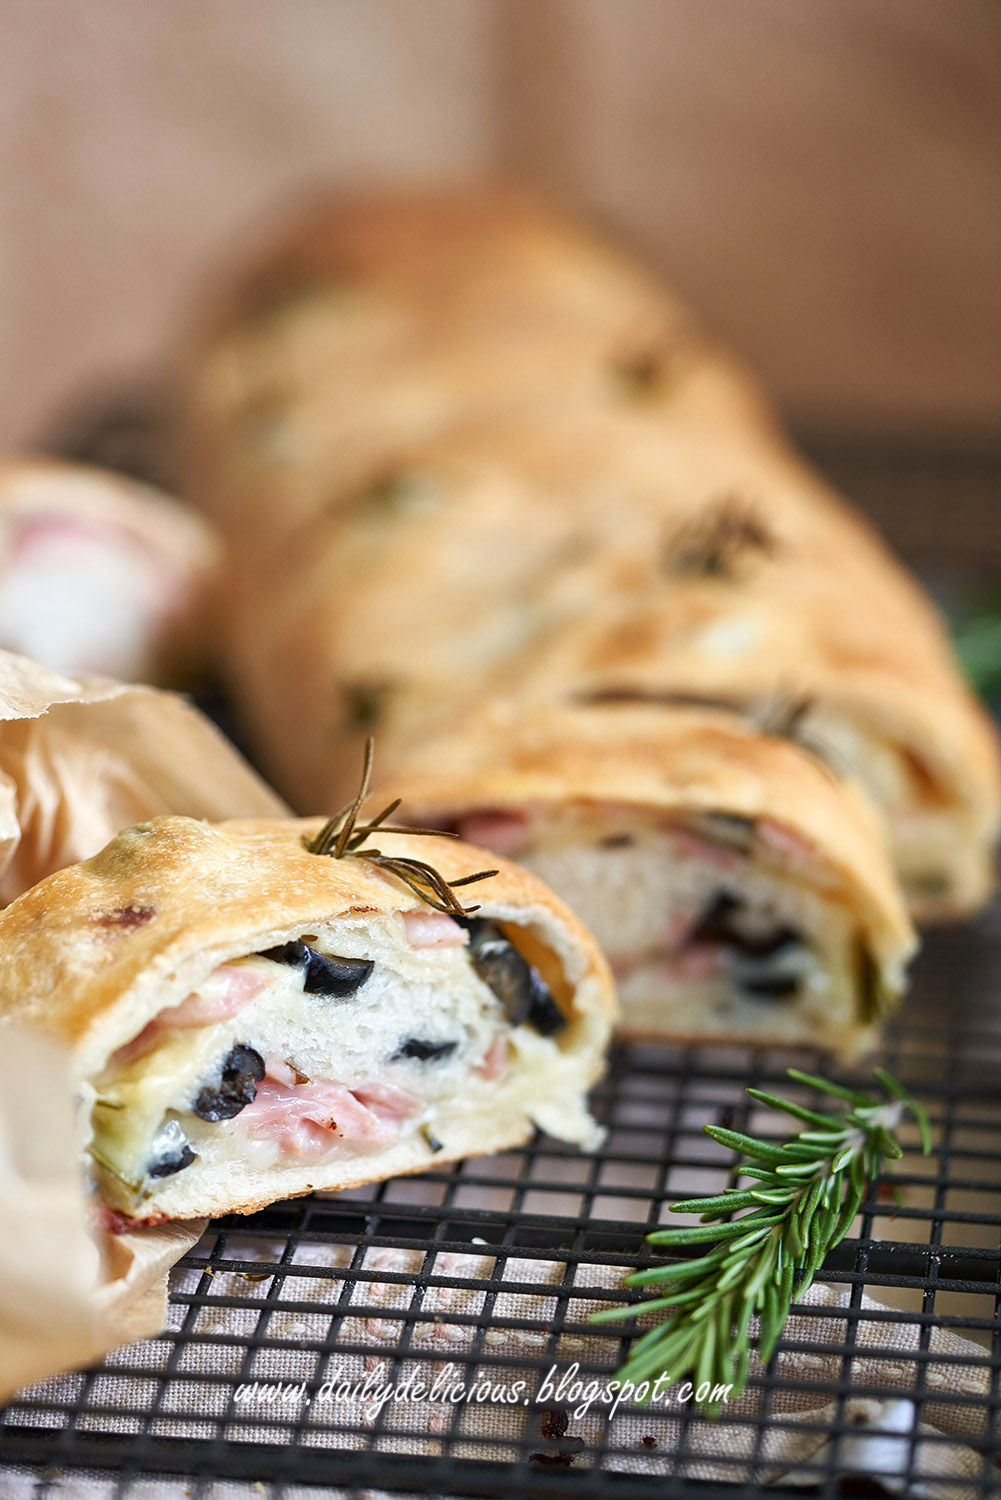 dailydelicious: Stromboli: Ham and cheese filled bread